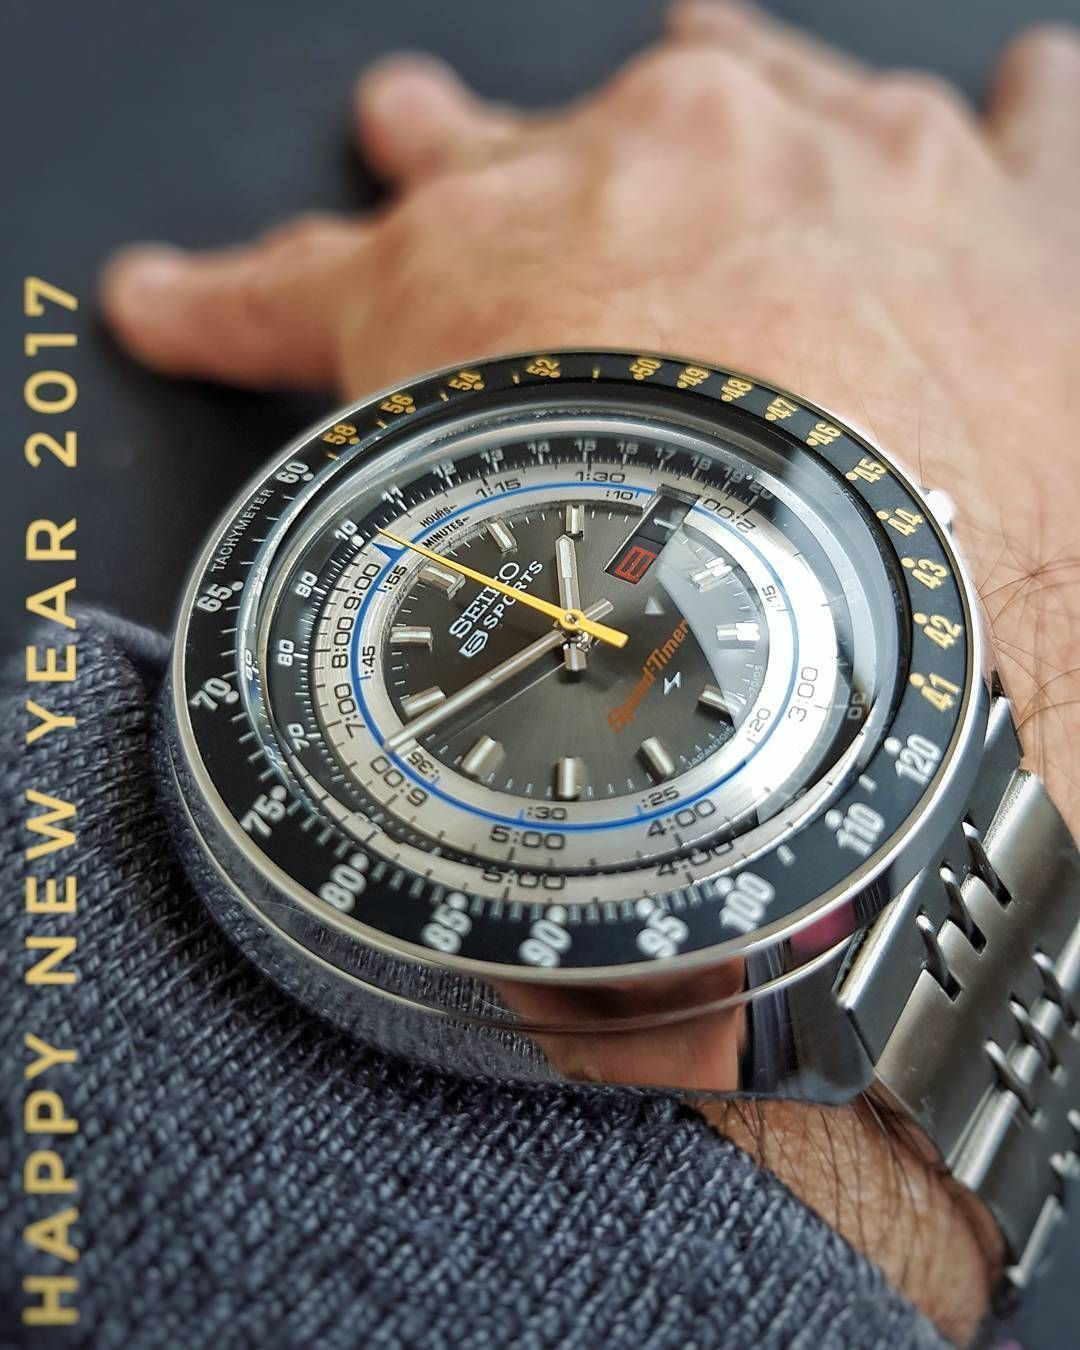 0409f1440e2 Vintage Seiko 7015-7010 - Chronograph Automatic - Flyback - 5 Sports  Speed-Timer - from 1972.